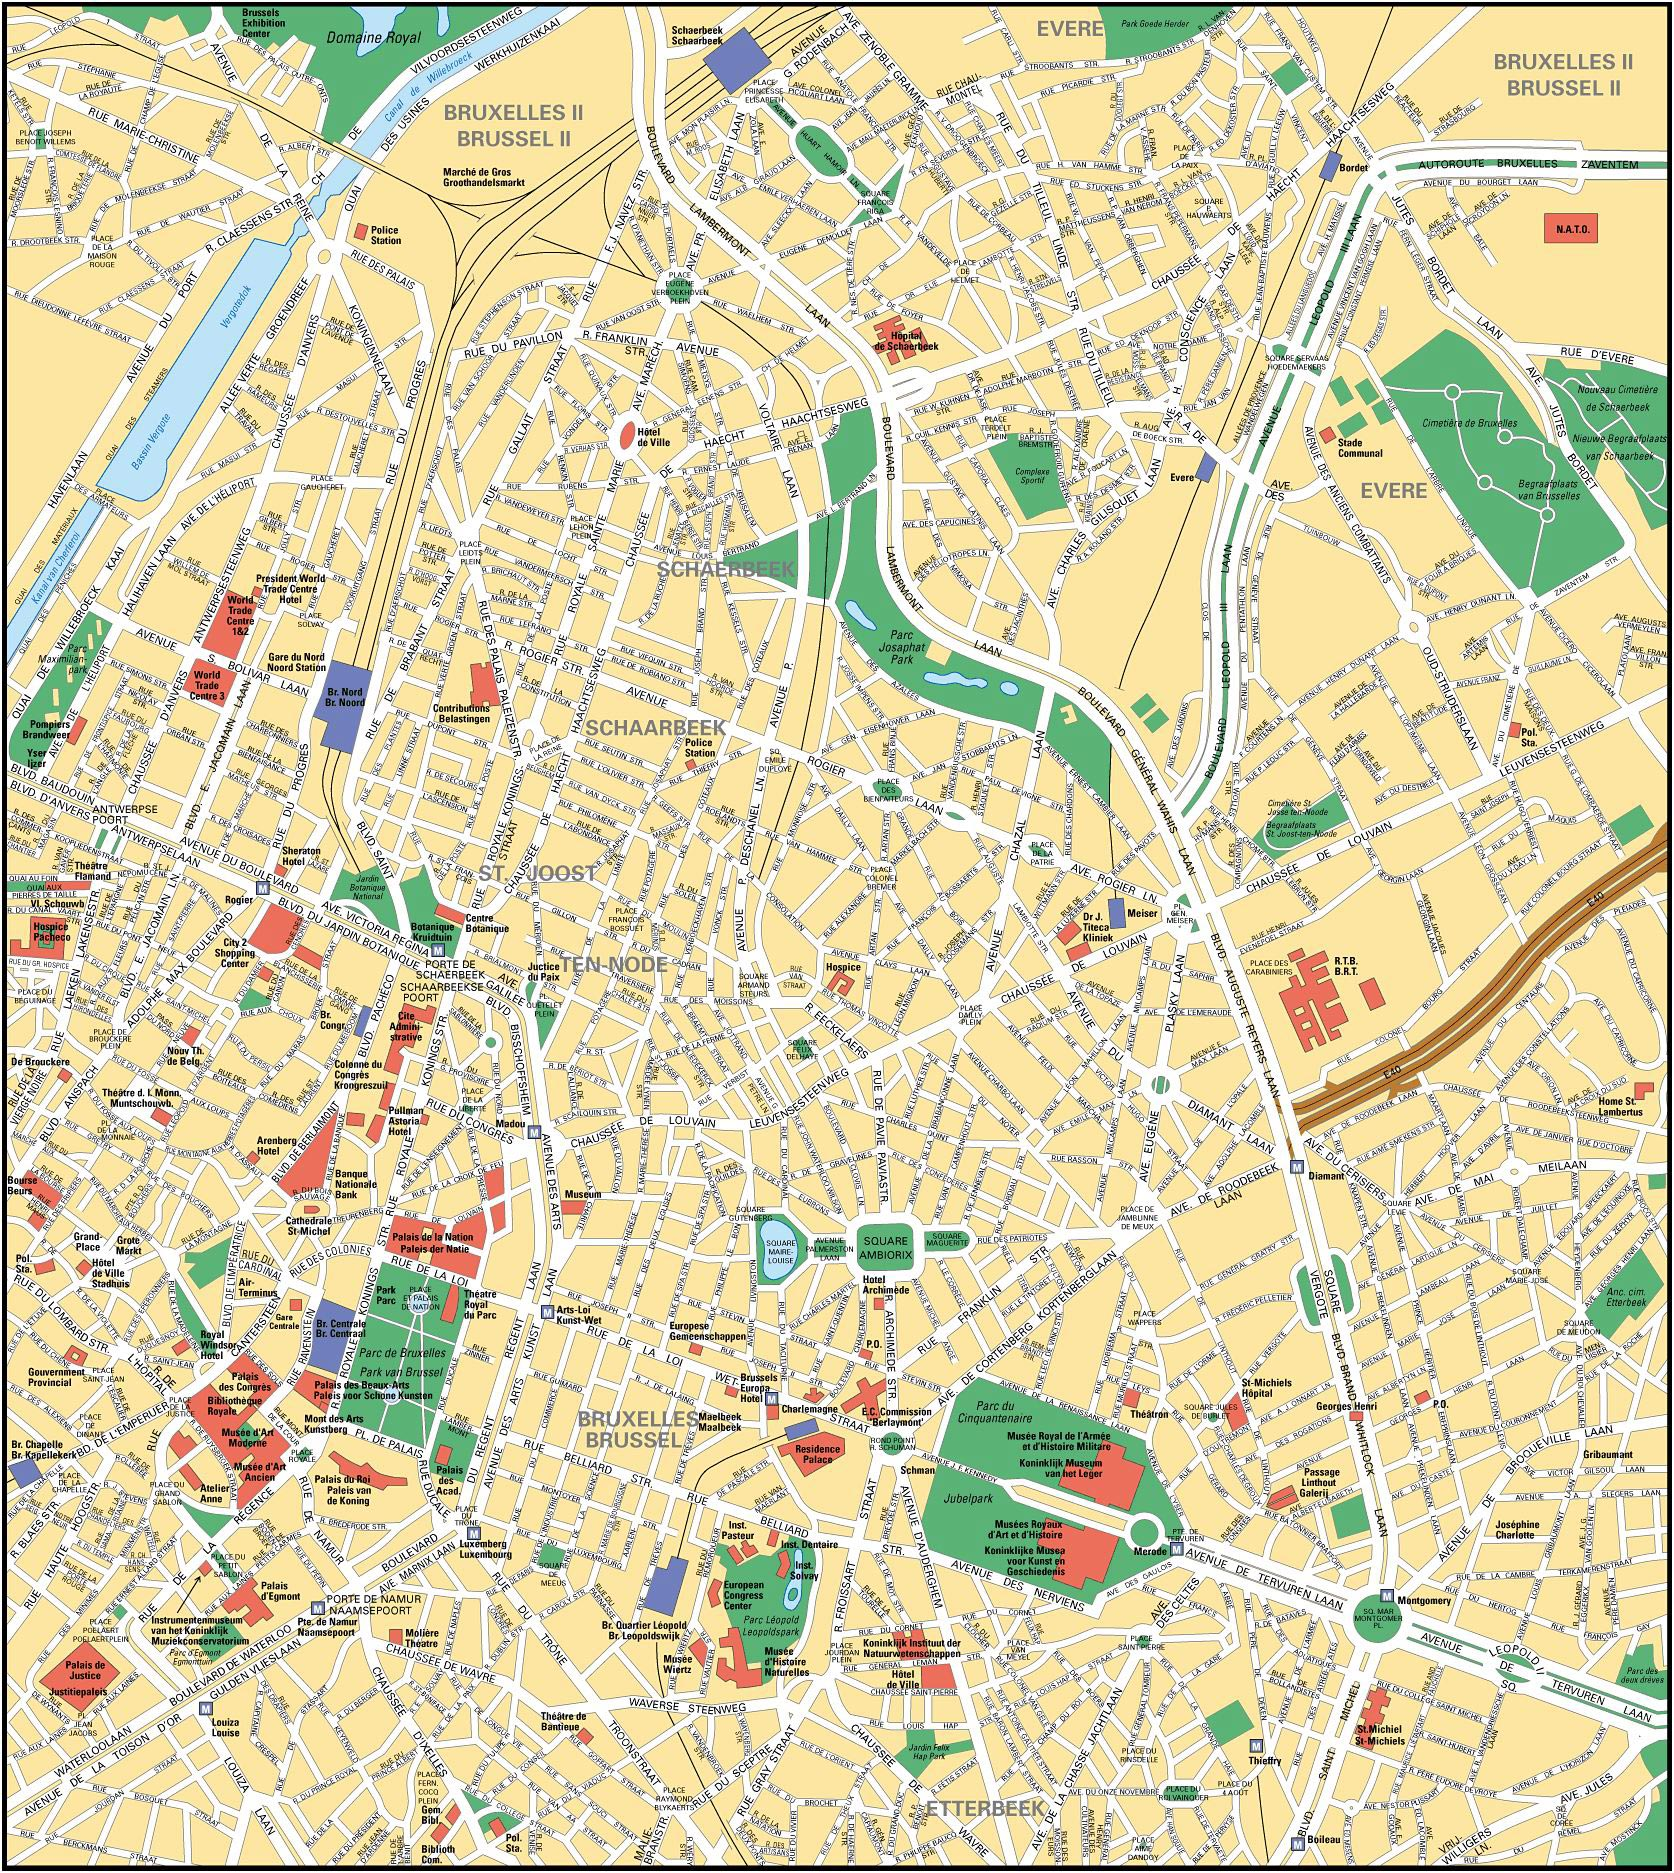 Brussels Map - Detailed City and Metro Maps of Brussels for Download ...